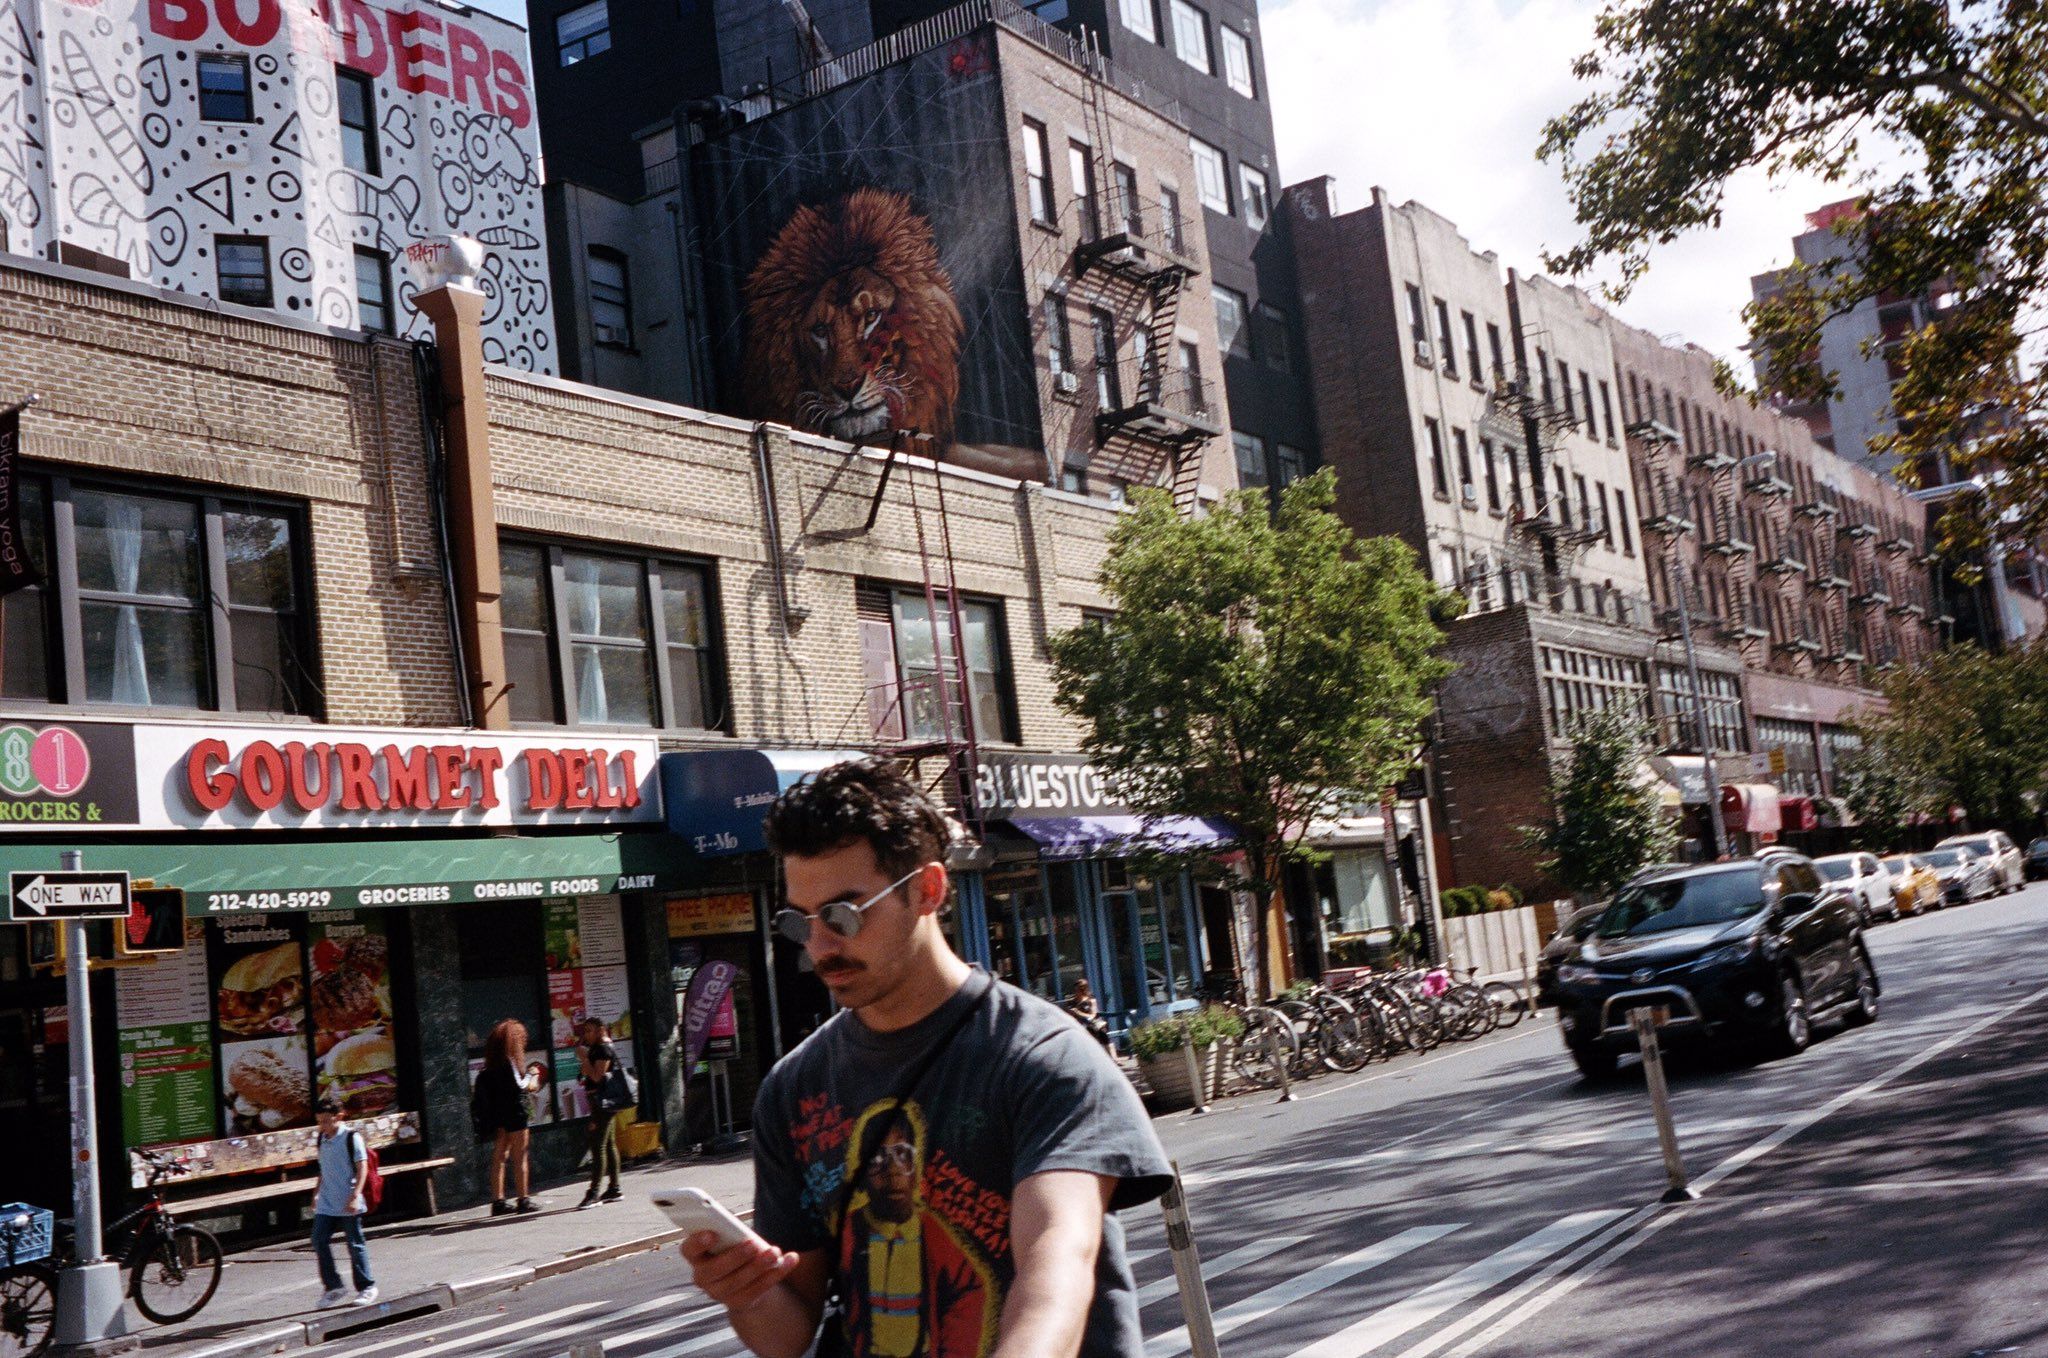 tbt nyc dayz with @MikeyDeleasa & @RichardChai https://t.co/Cp5rBpfVAr